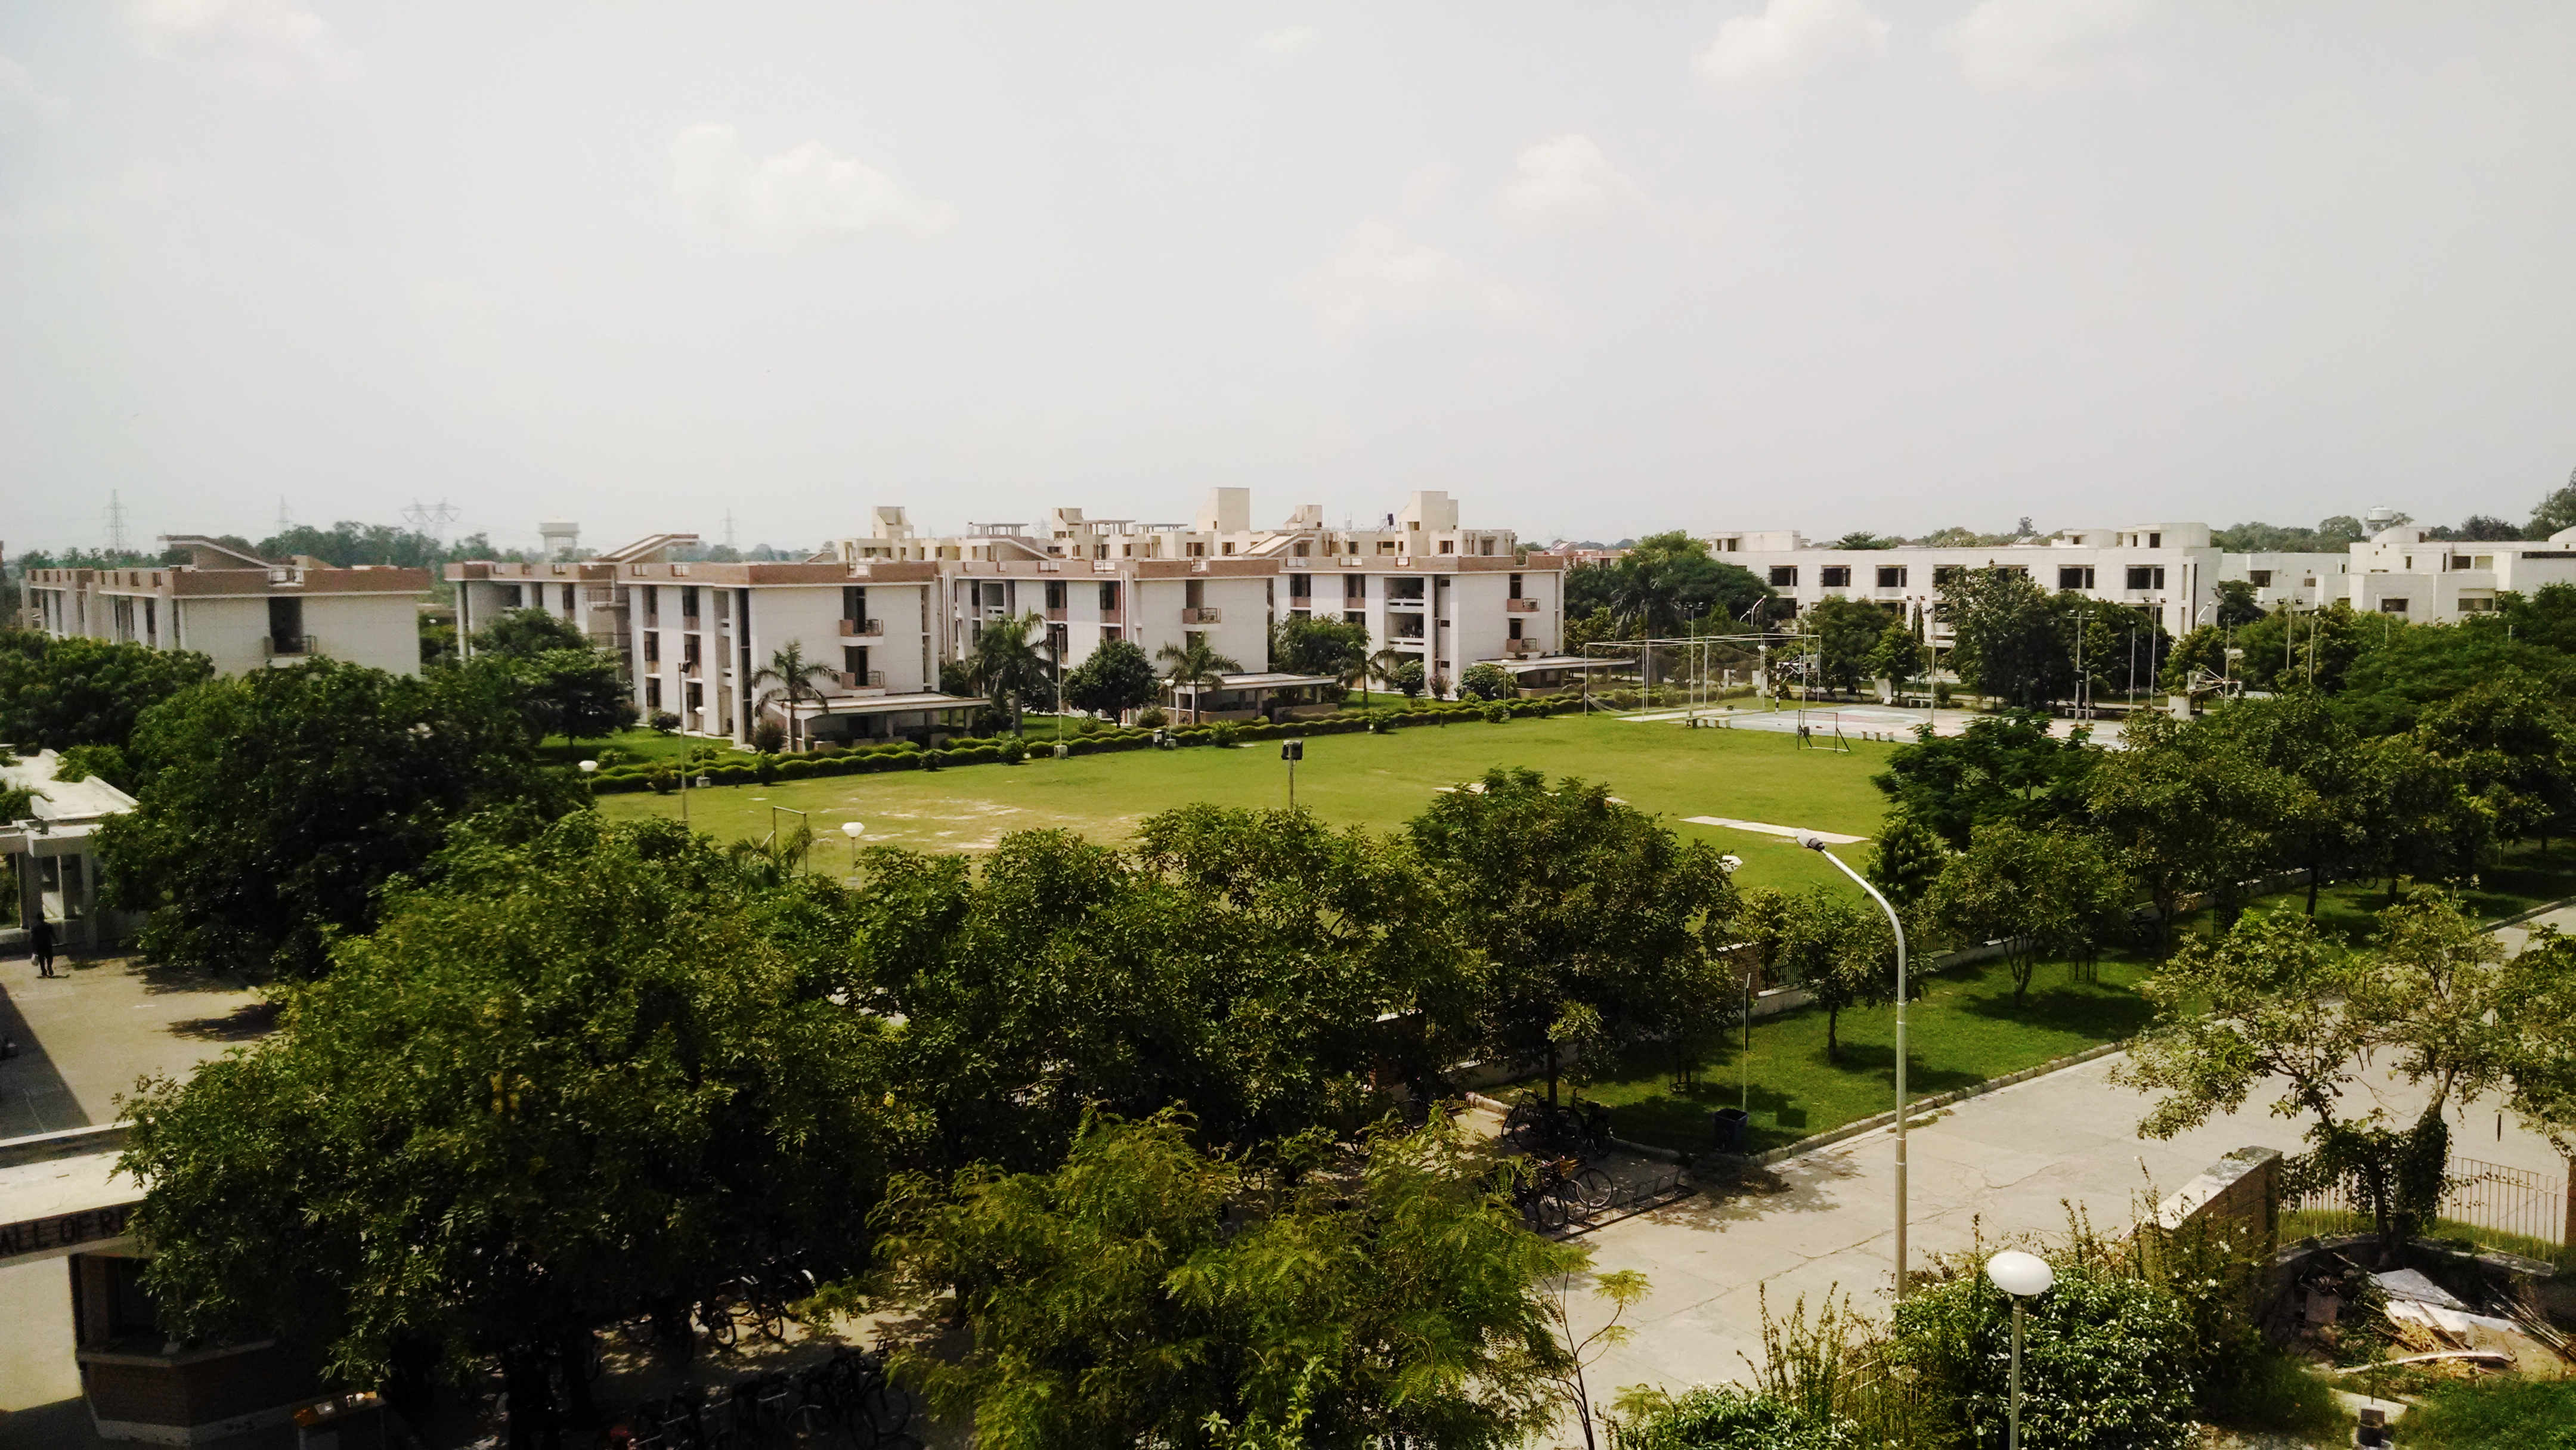 SkyView of IIT Kanpur Campus